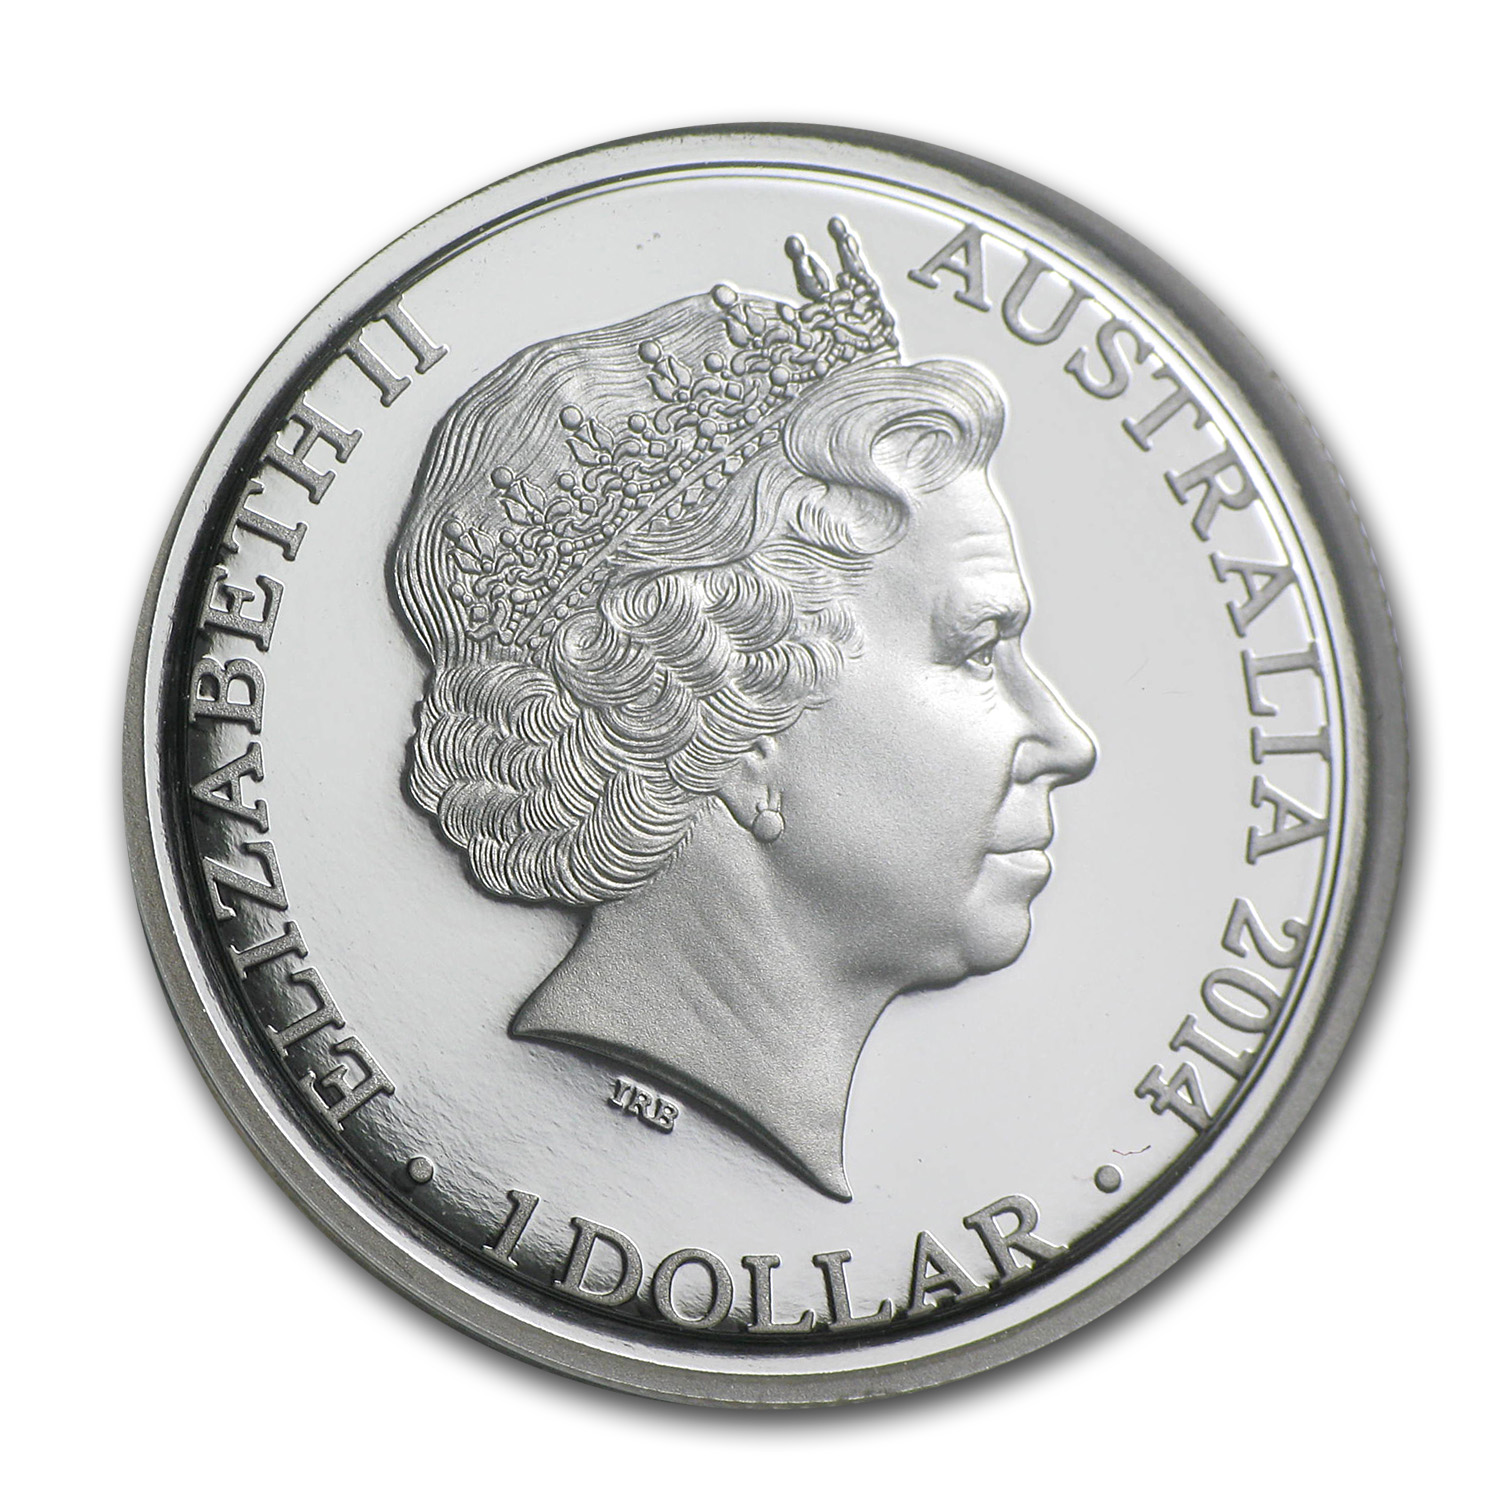 2014 Australia Silver $1 Kangaroo at Sunset